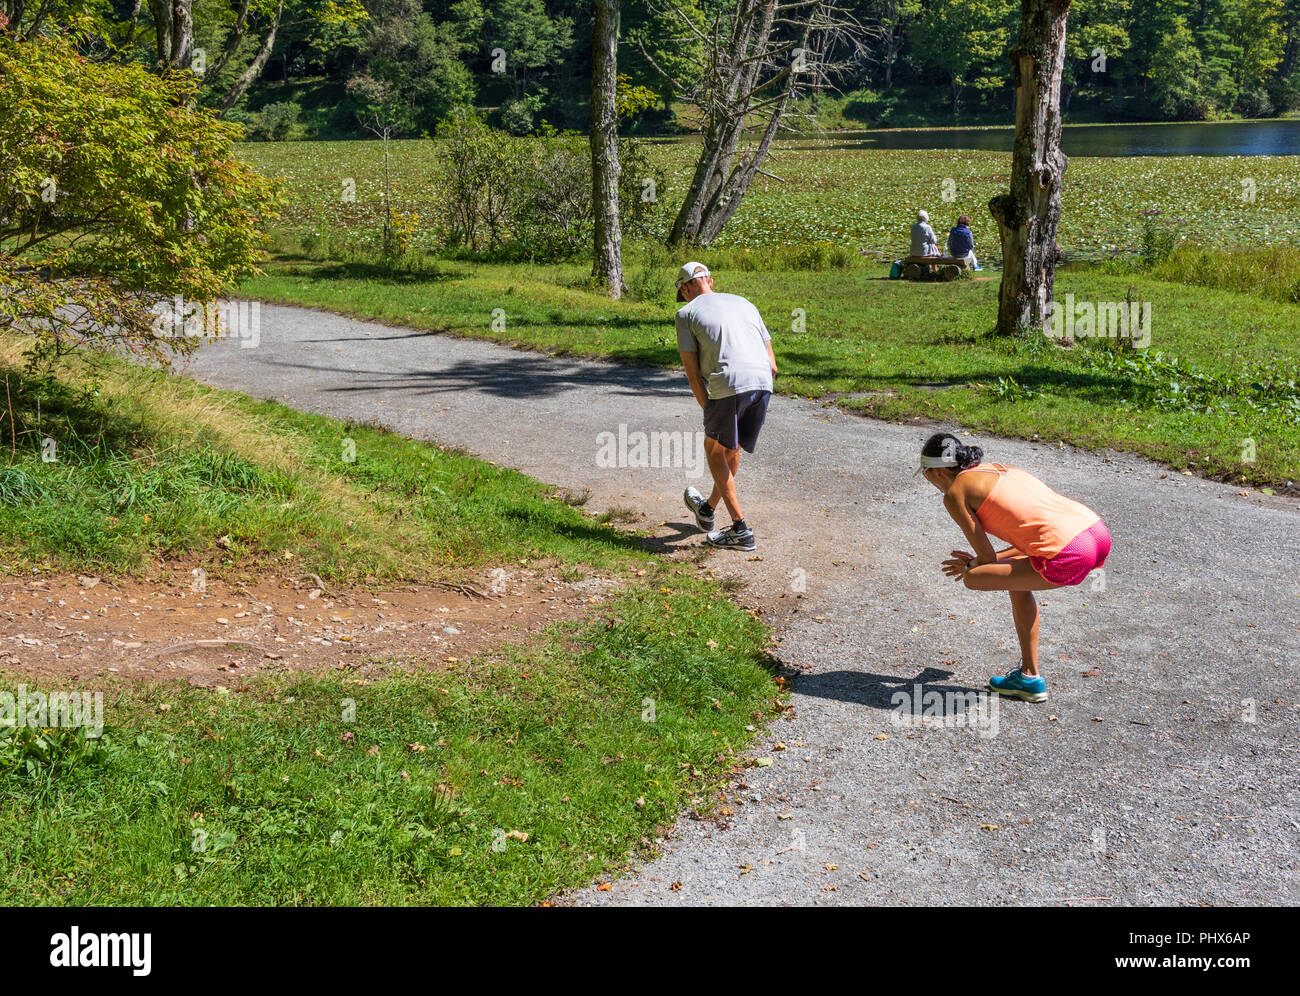 BLOWING ROCK, NC, USA-8/23/18: Two runners, male and female, stretching prior to running around Bass Lake and two women sit on a bench near the lake. Stock Photo